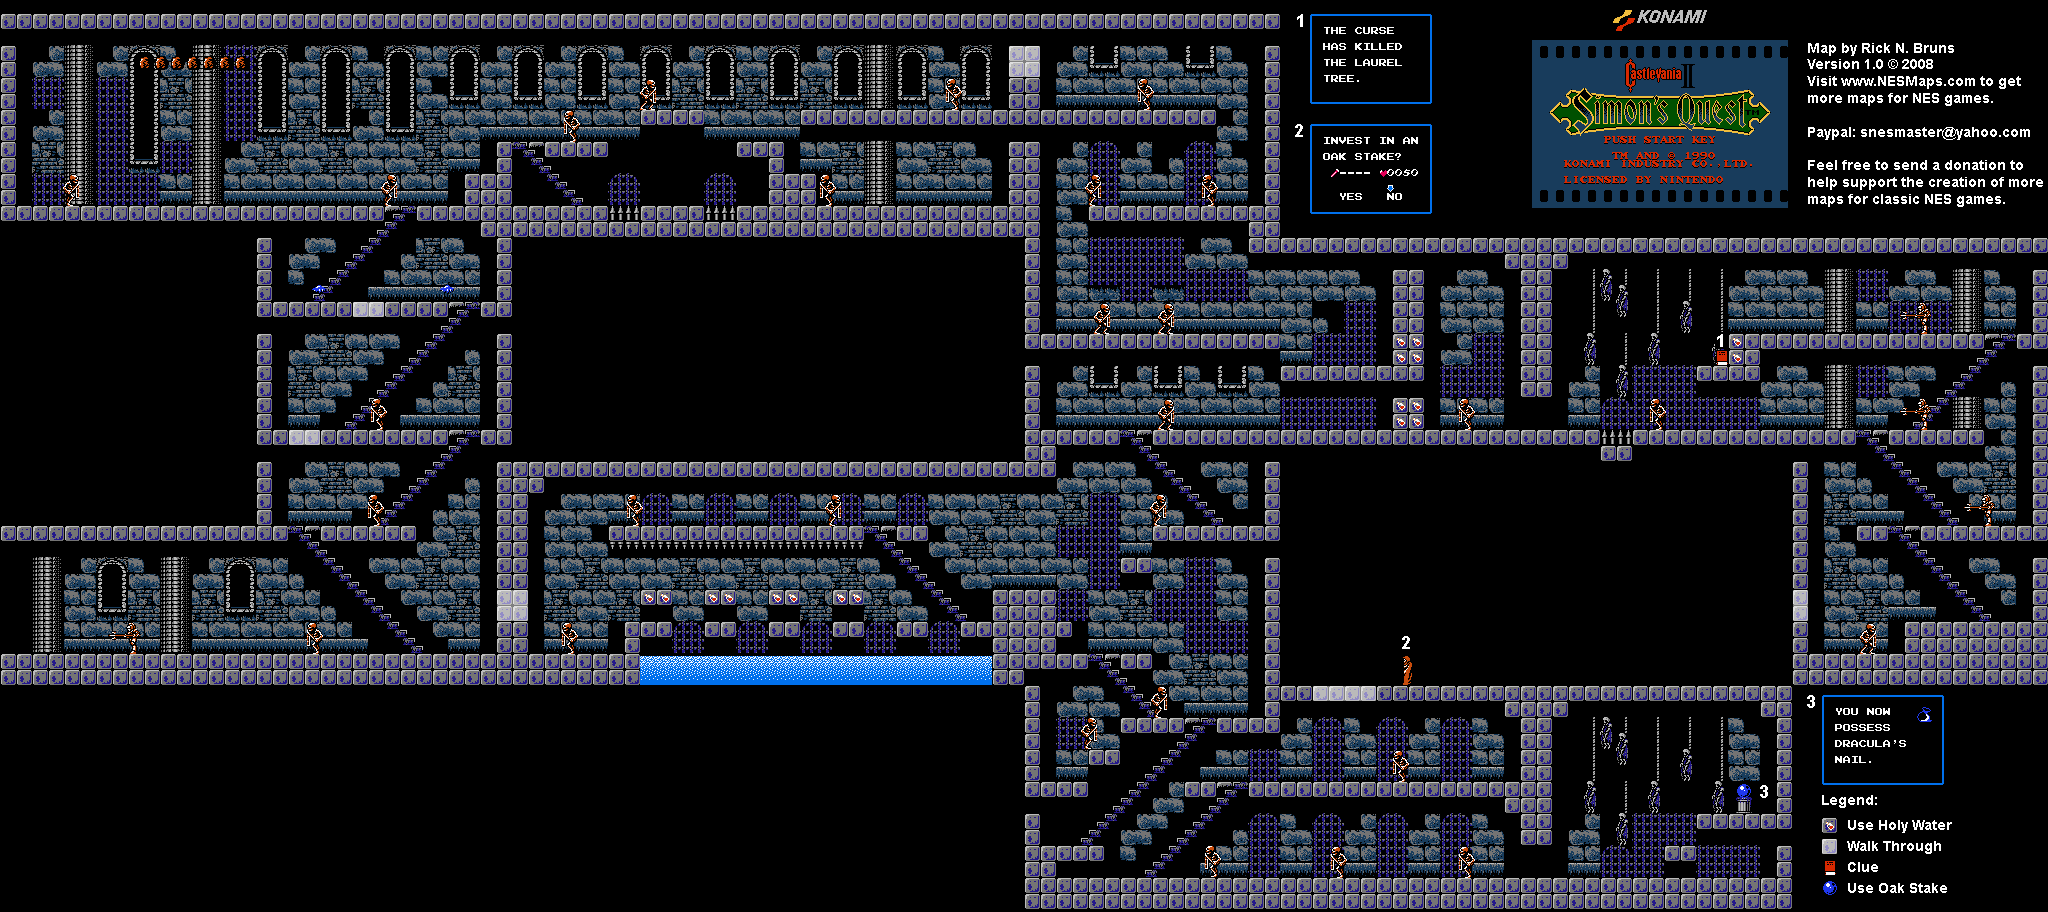 Castlevania World Map.Castlevania Ii Simon S Quest Map Selection Labeled Maps